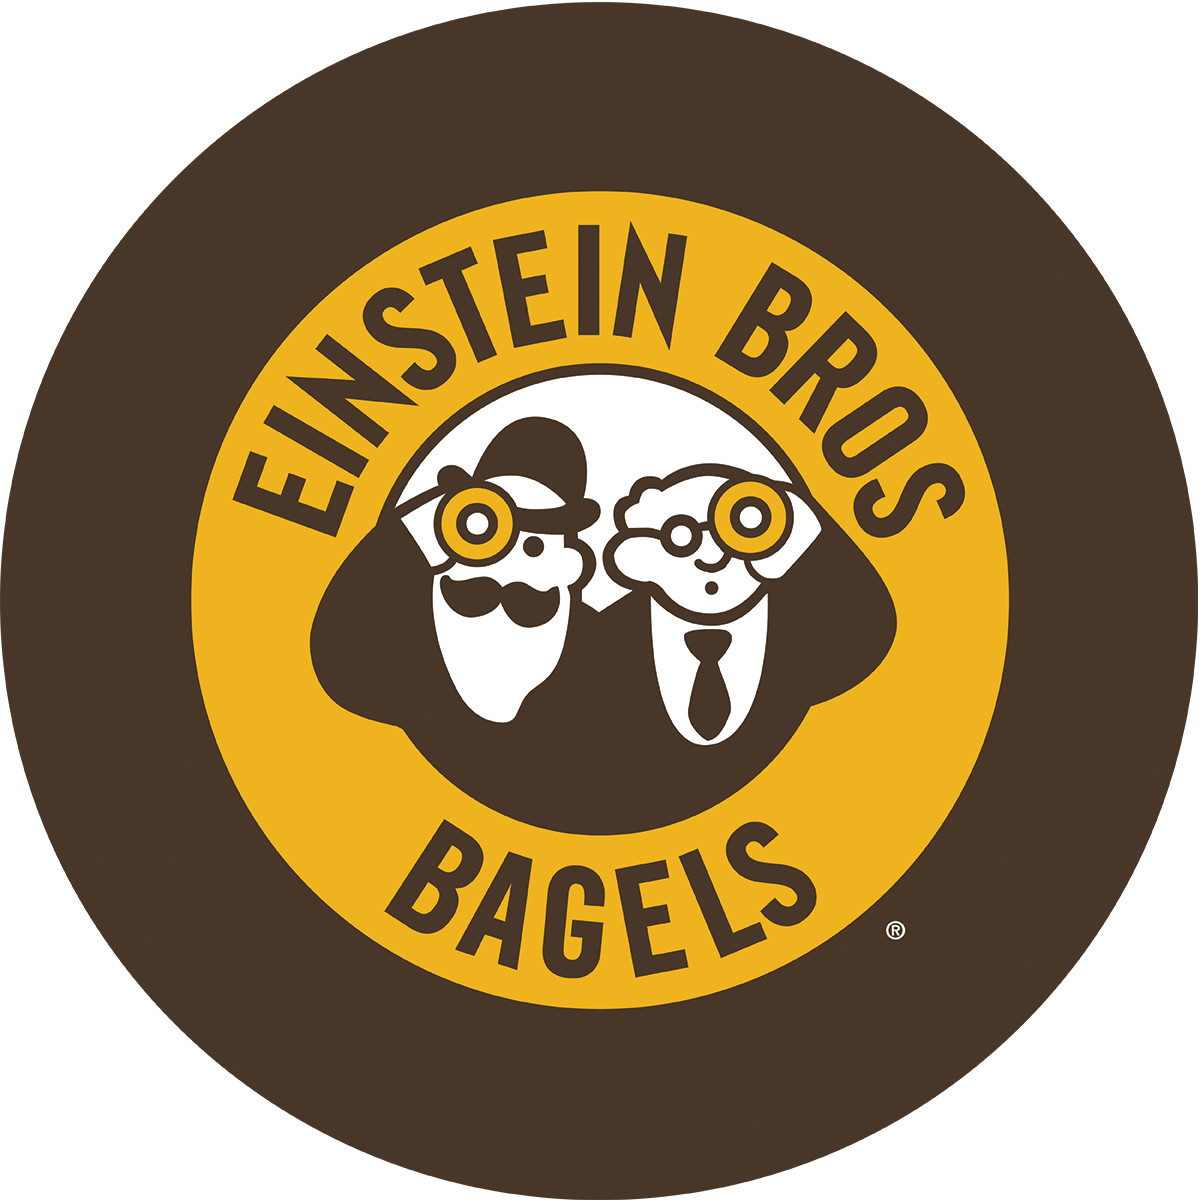 Einstein Bros. Bagels image 11